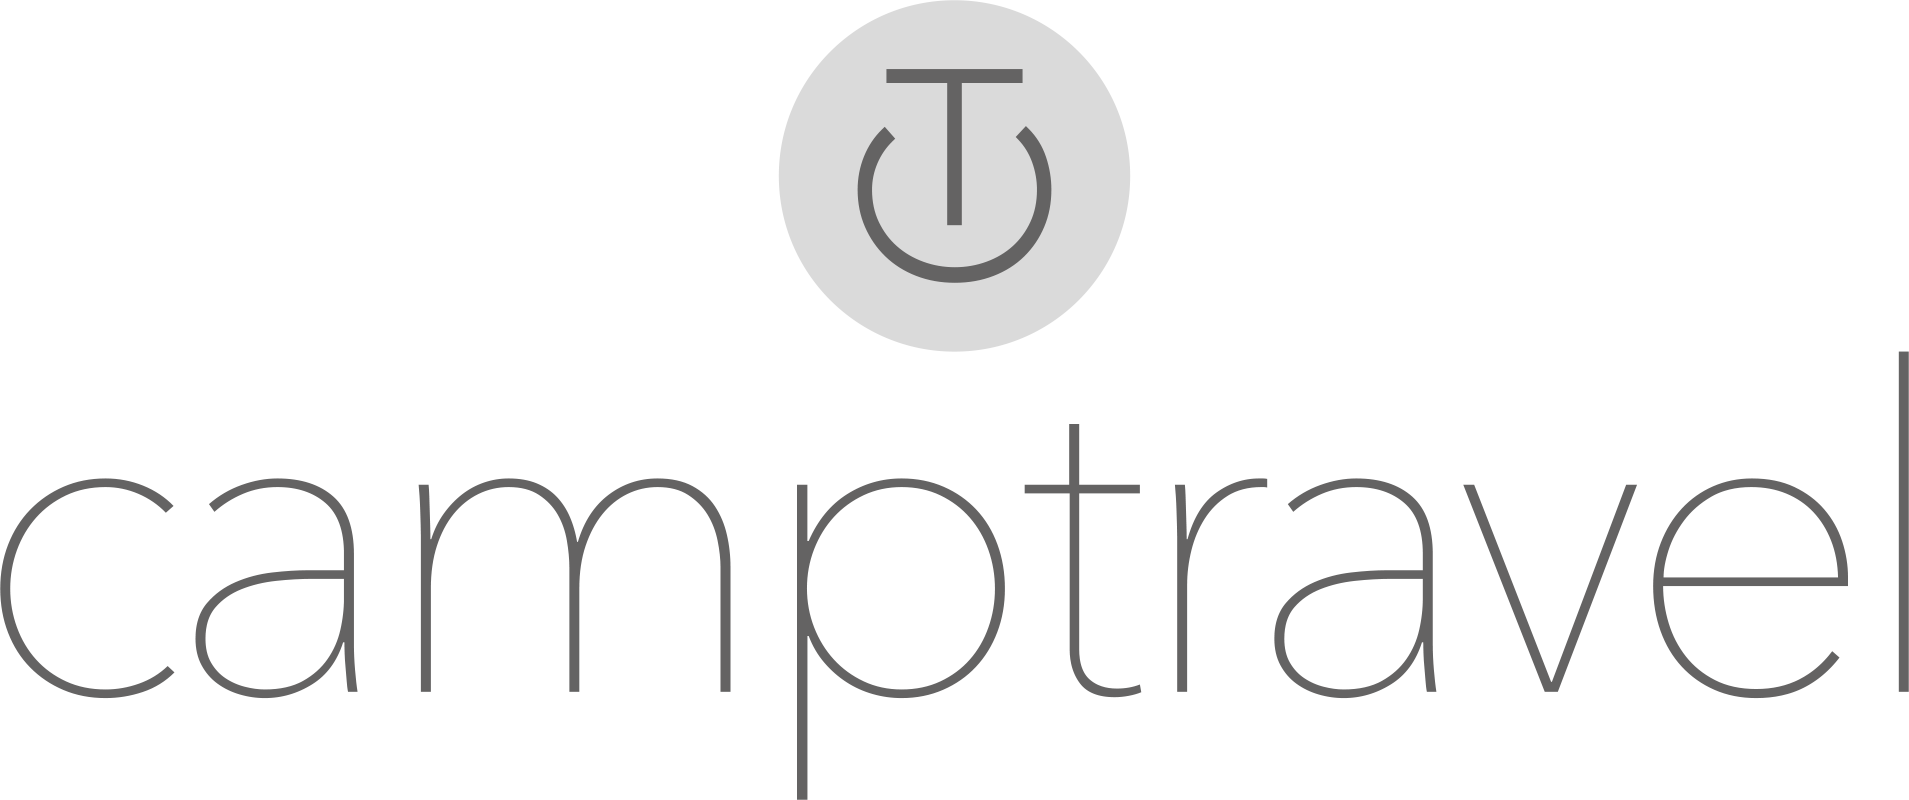 Camptravel logo 2 dark hr